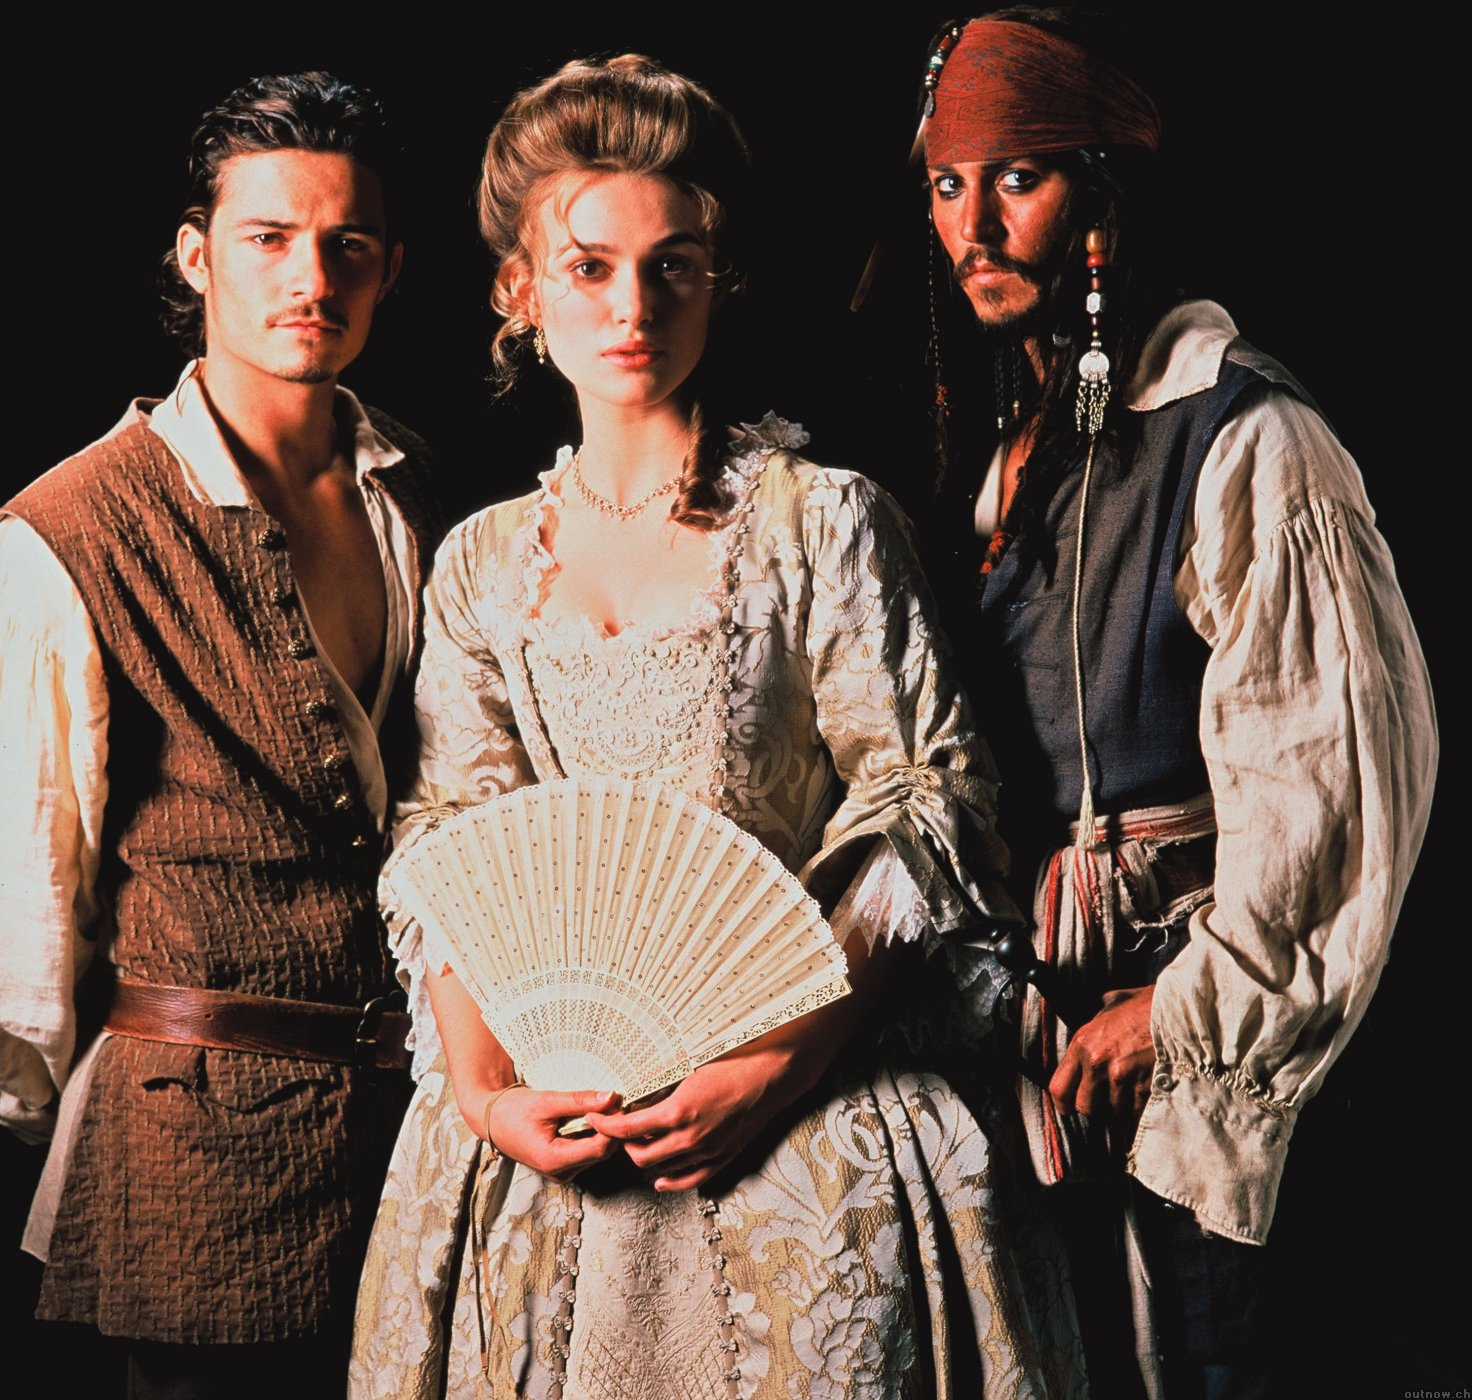 Orlando Bloom, Kiera Knightley, Johnny Depp